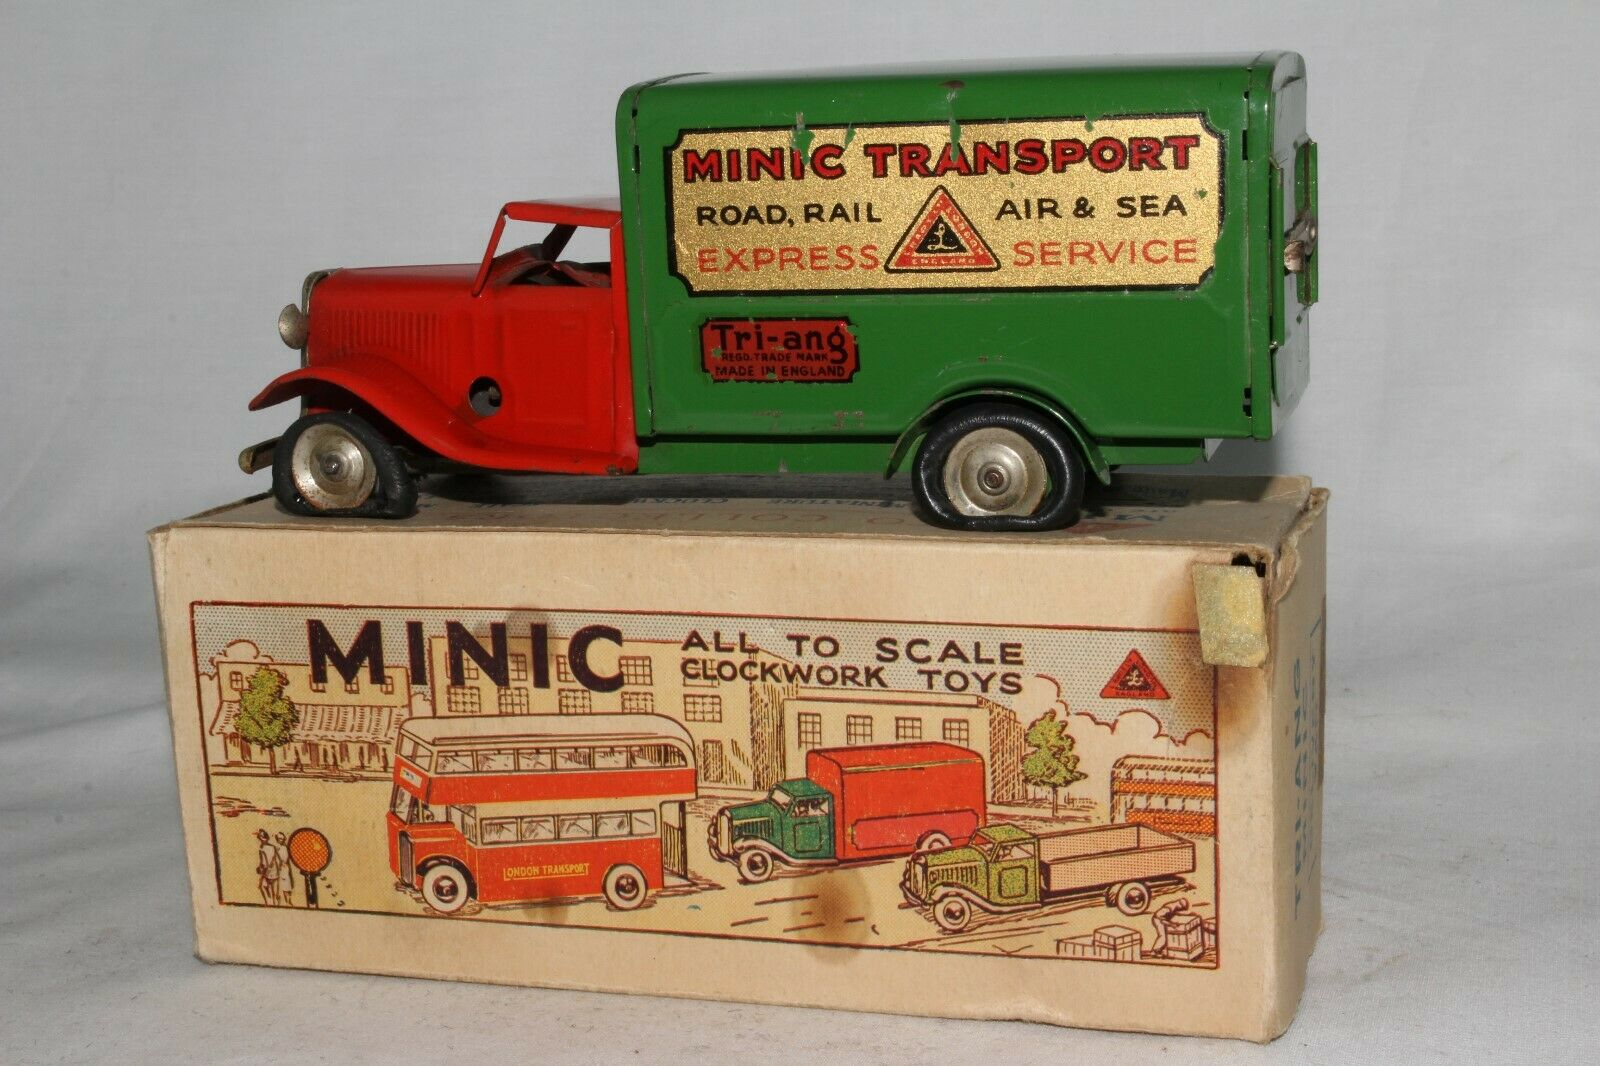 1980 s Triangminic Windup Tin Delivery Truck med originalruta